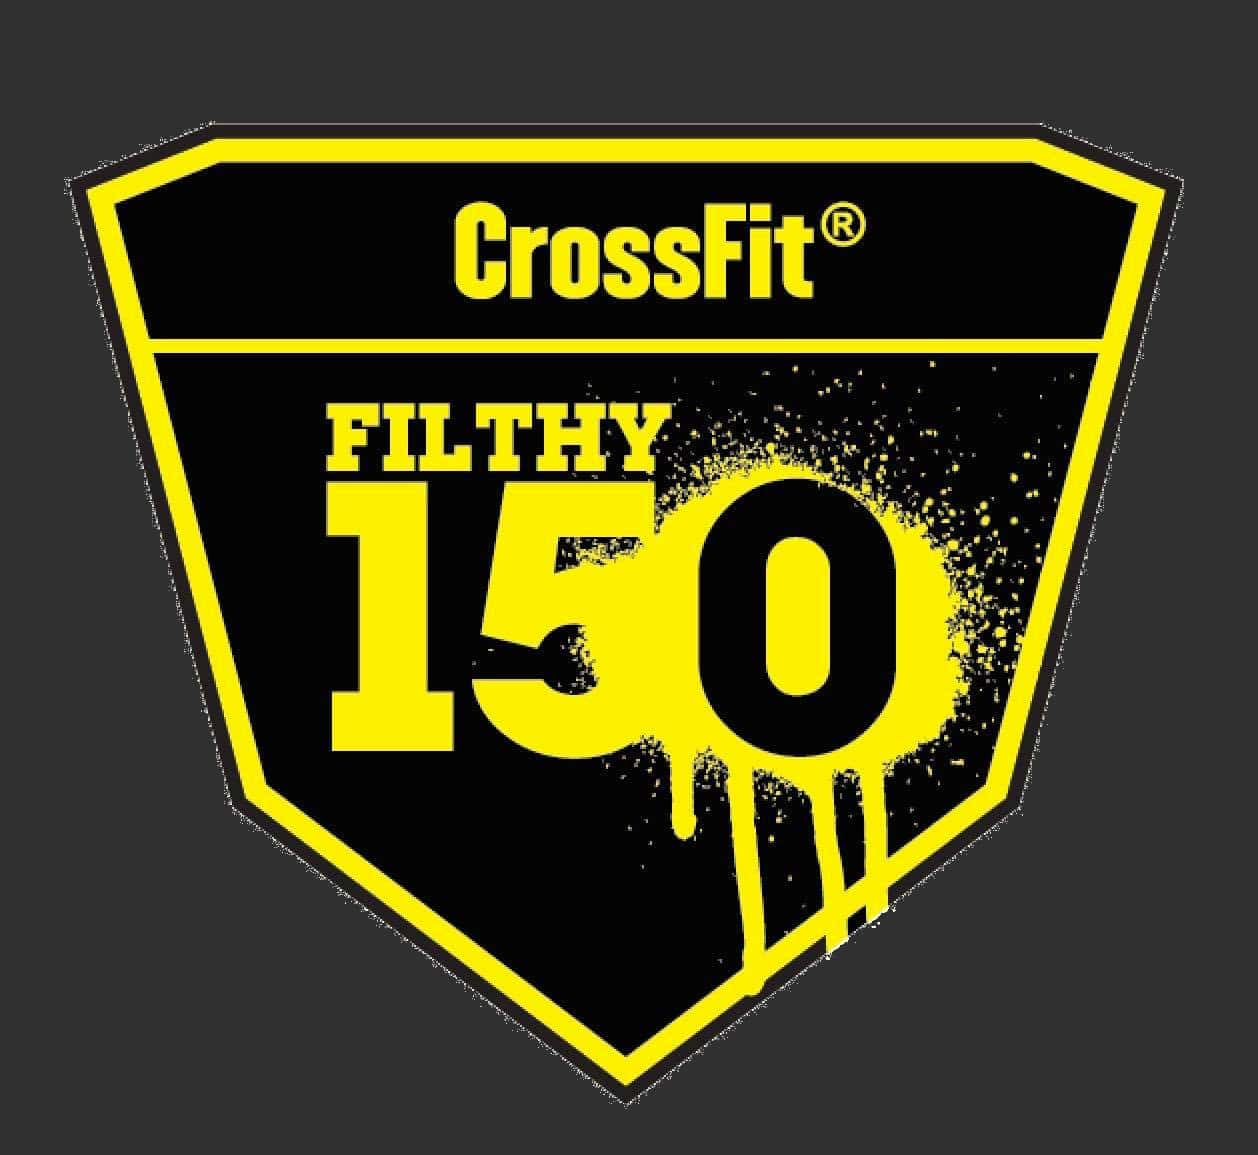 CrossFit Filthy 150